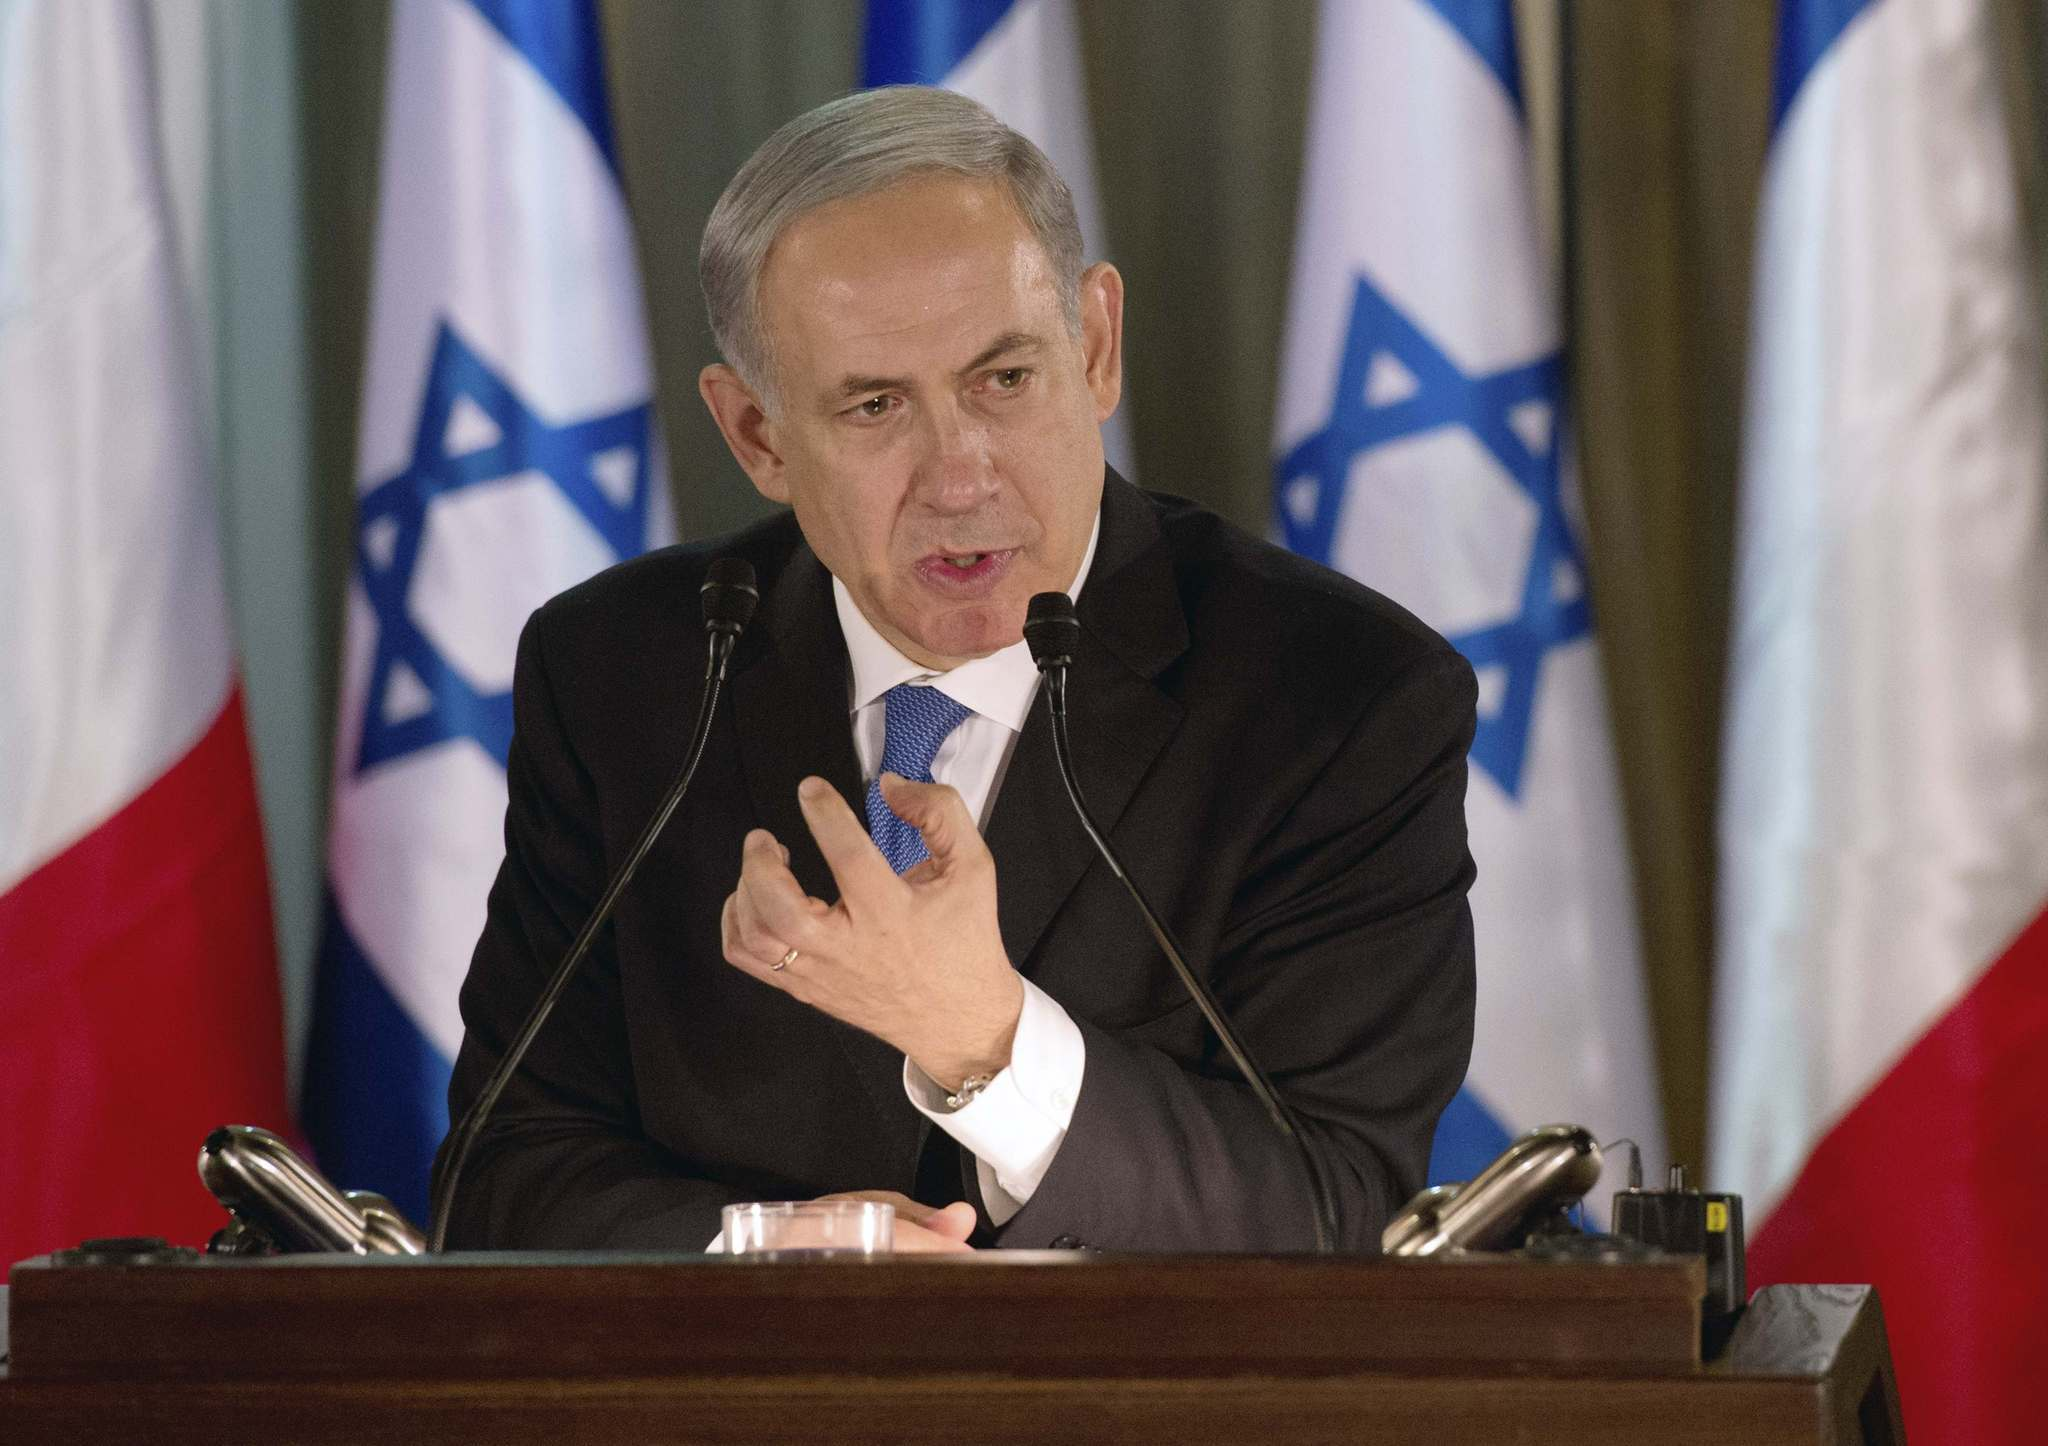 Israel Prime Minister Benjamin Netanyahu speaks during a joint news conference with French President Francois Hollande (not pictured) at his residence in Jerusalem November 17, 2013. President Hollande assured Israel on Sunday that France would continue to oppose an easing of economic sanctions against Iran until it was convinced Tehran had ended a pursuit of nuclear weapons.